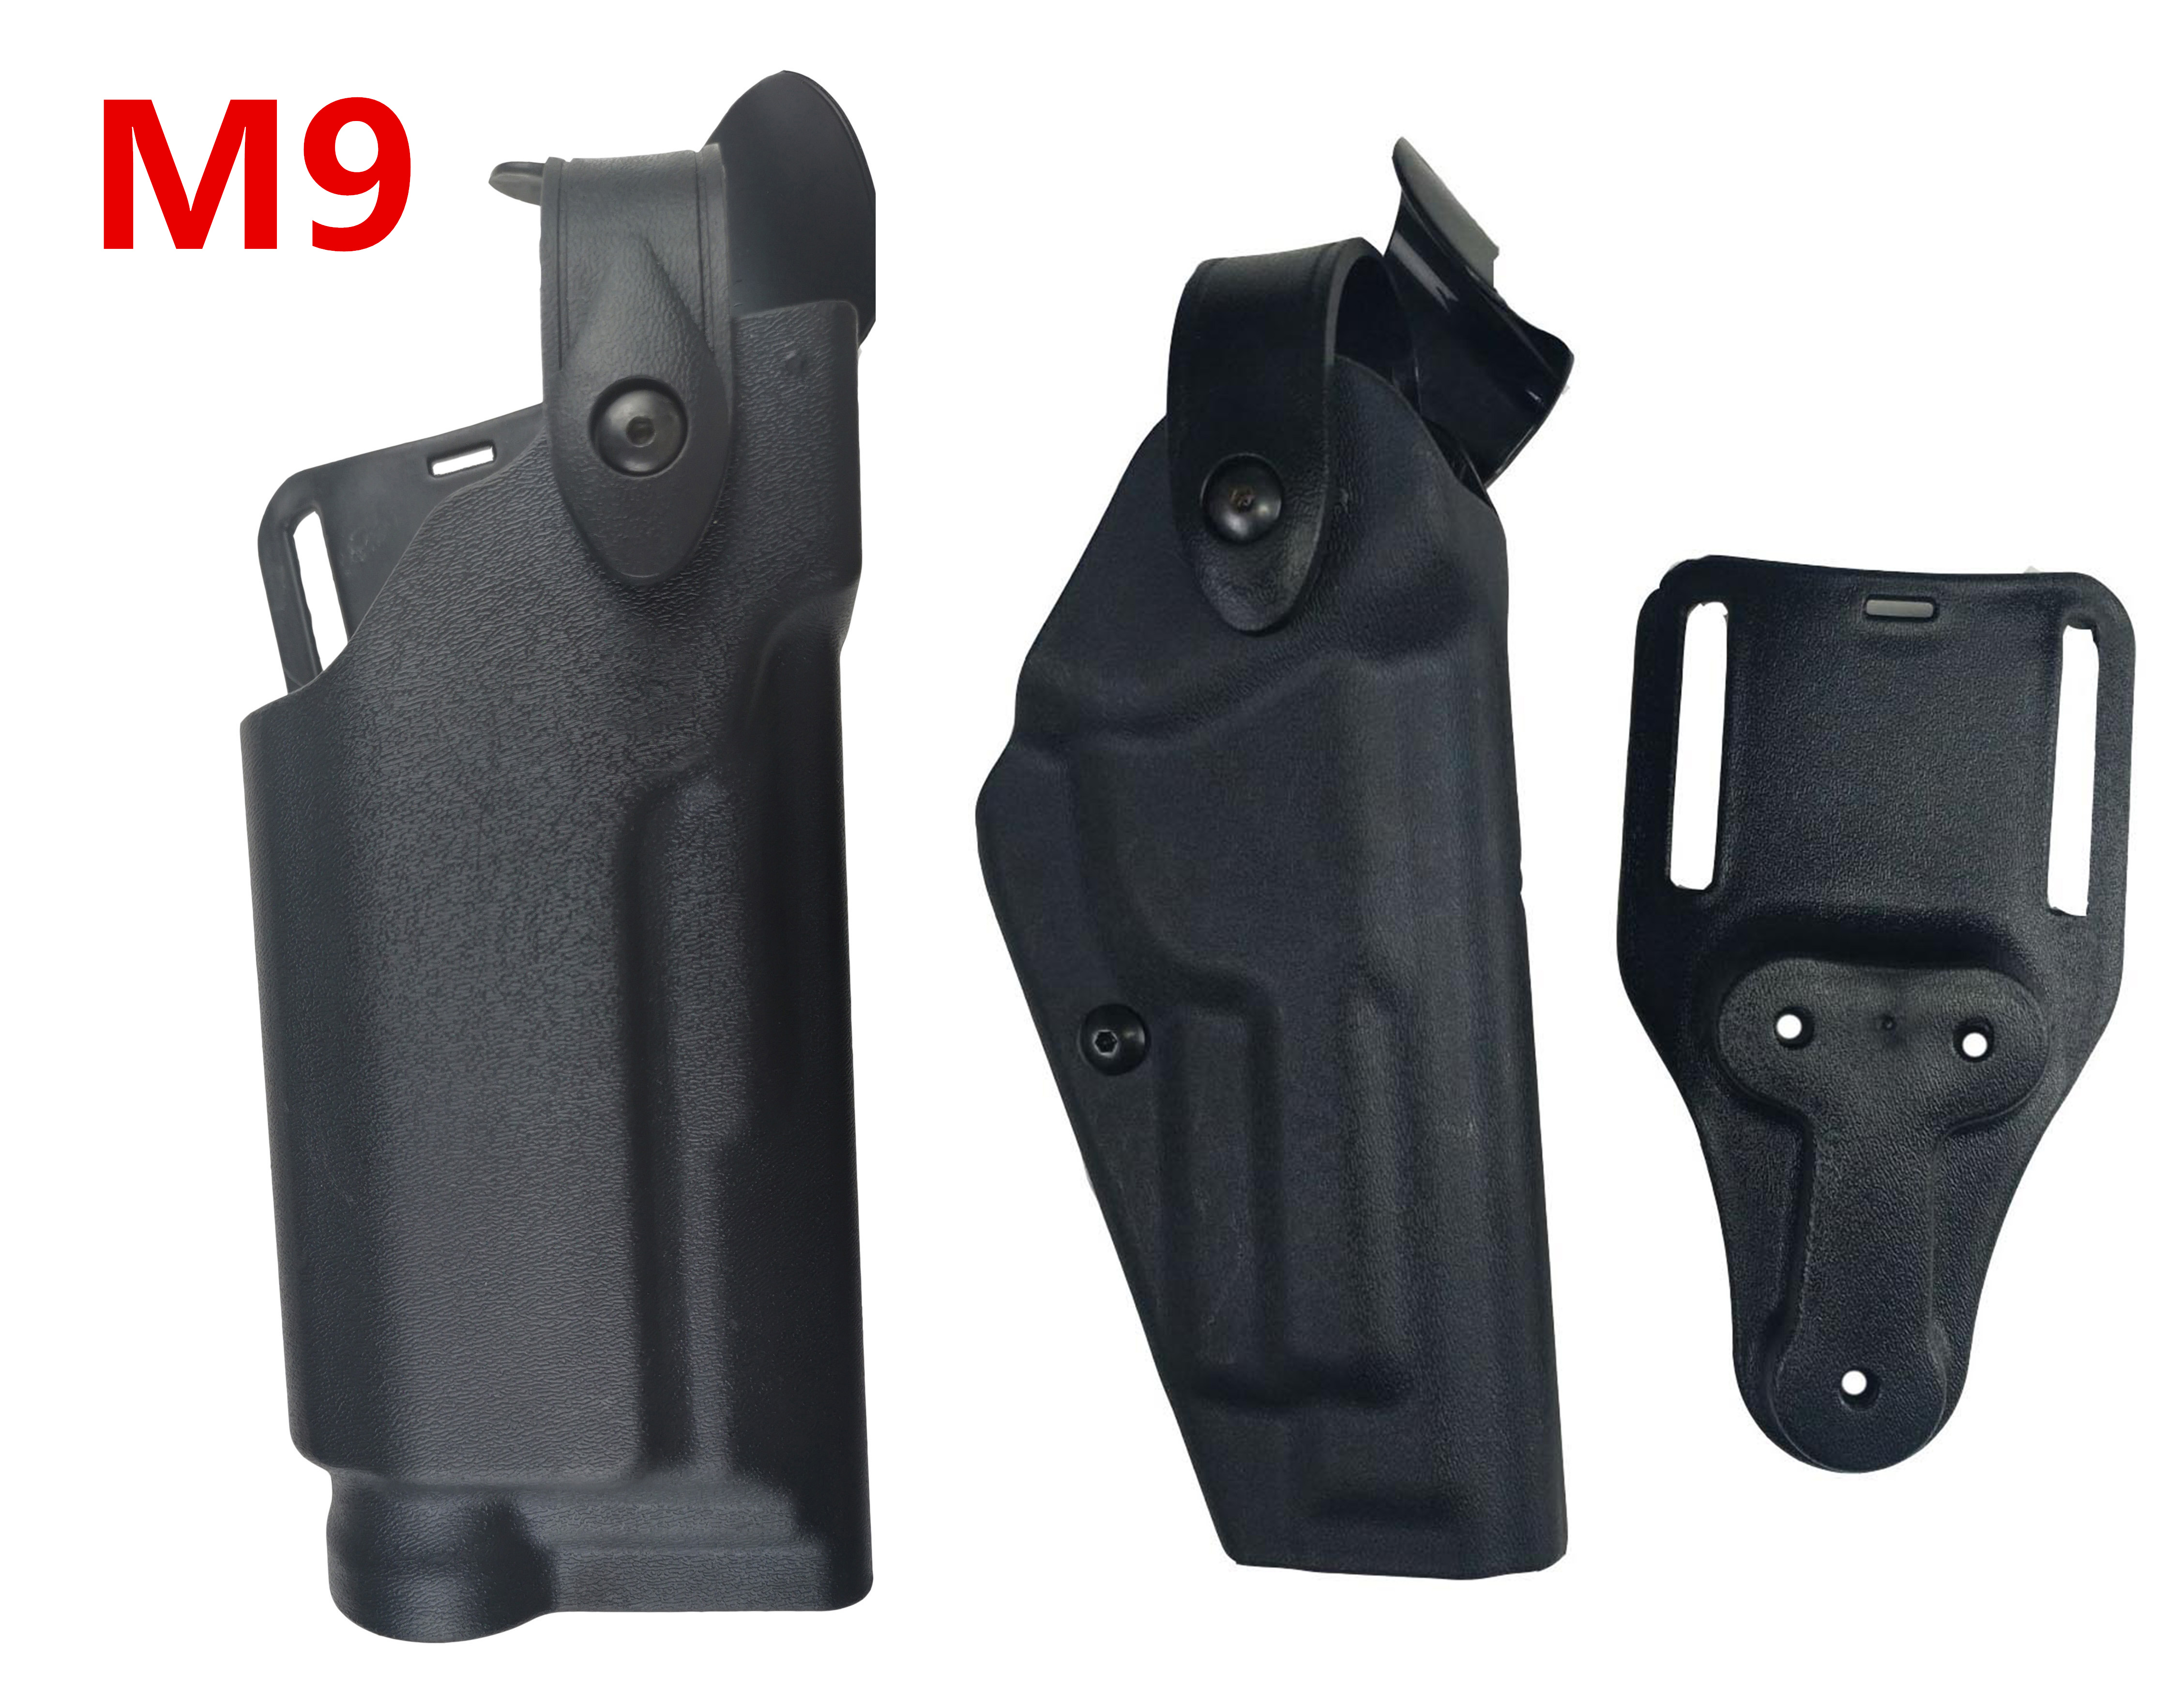 Tactical Beretta M9 92 96 Airsoft gun Holster Hunting Gear Light Bearing Belt Holster Right Hand Gun Carry Pistol Waist Holsters in Holsters from Sports Entertainment